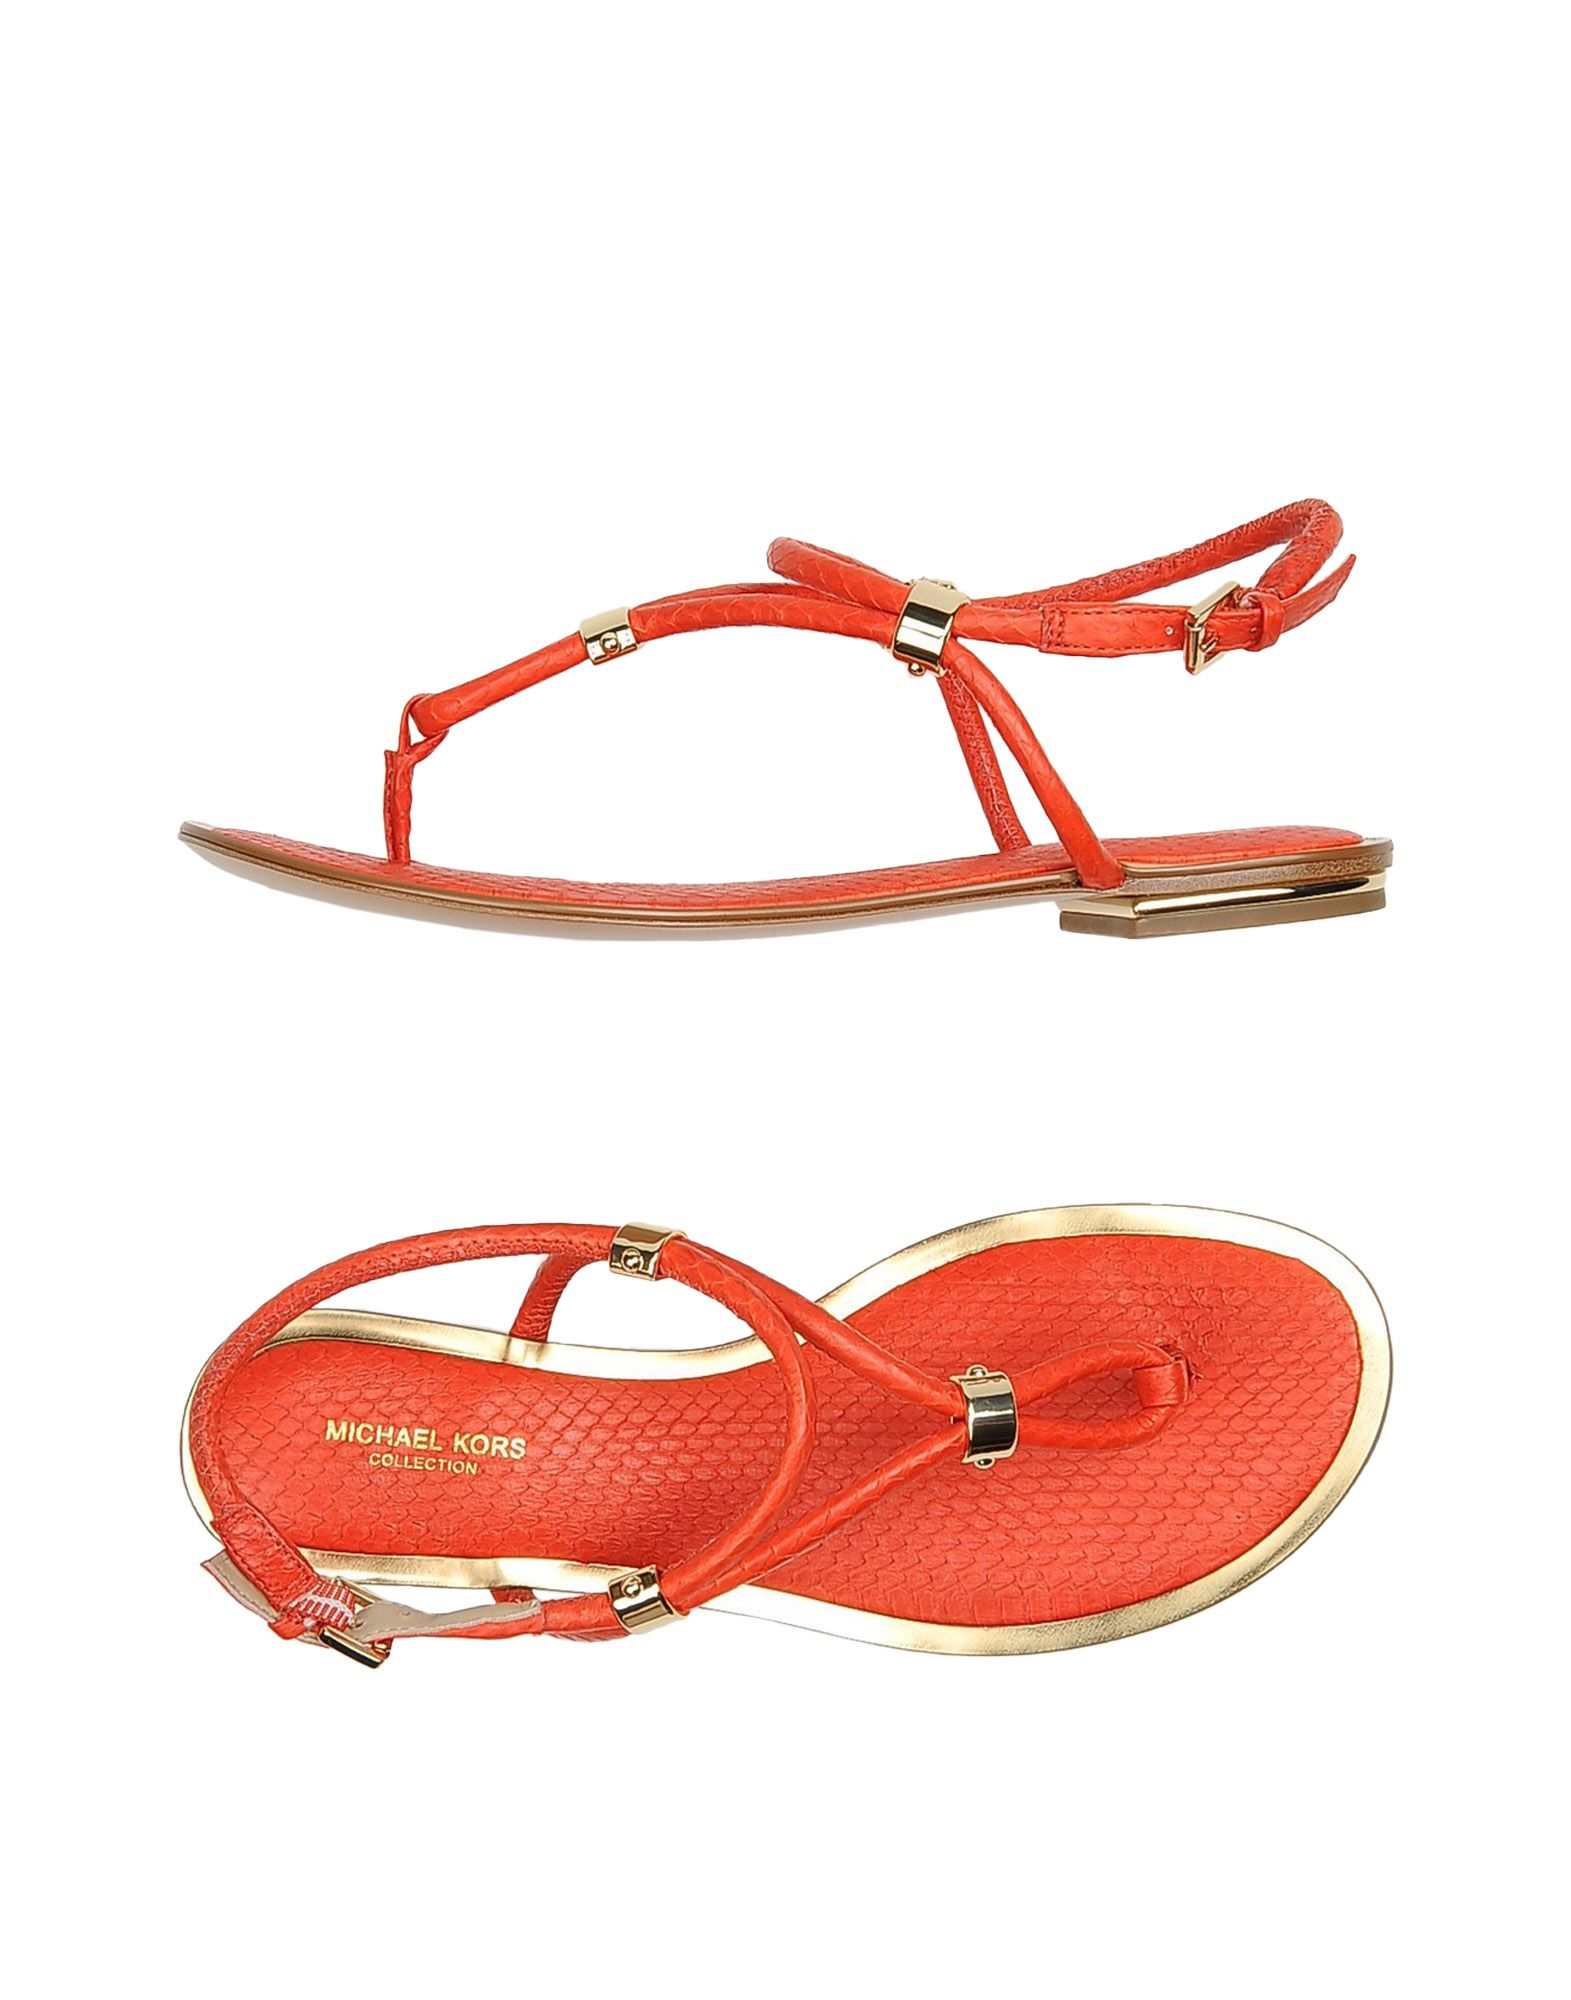 michael kors female michael kors toe strap sandals